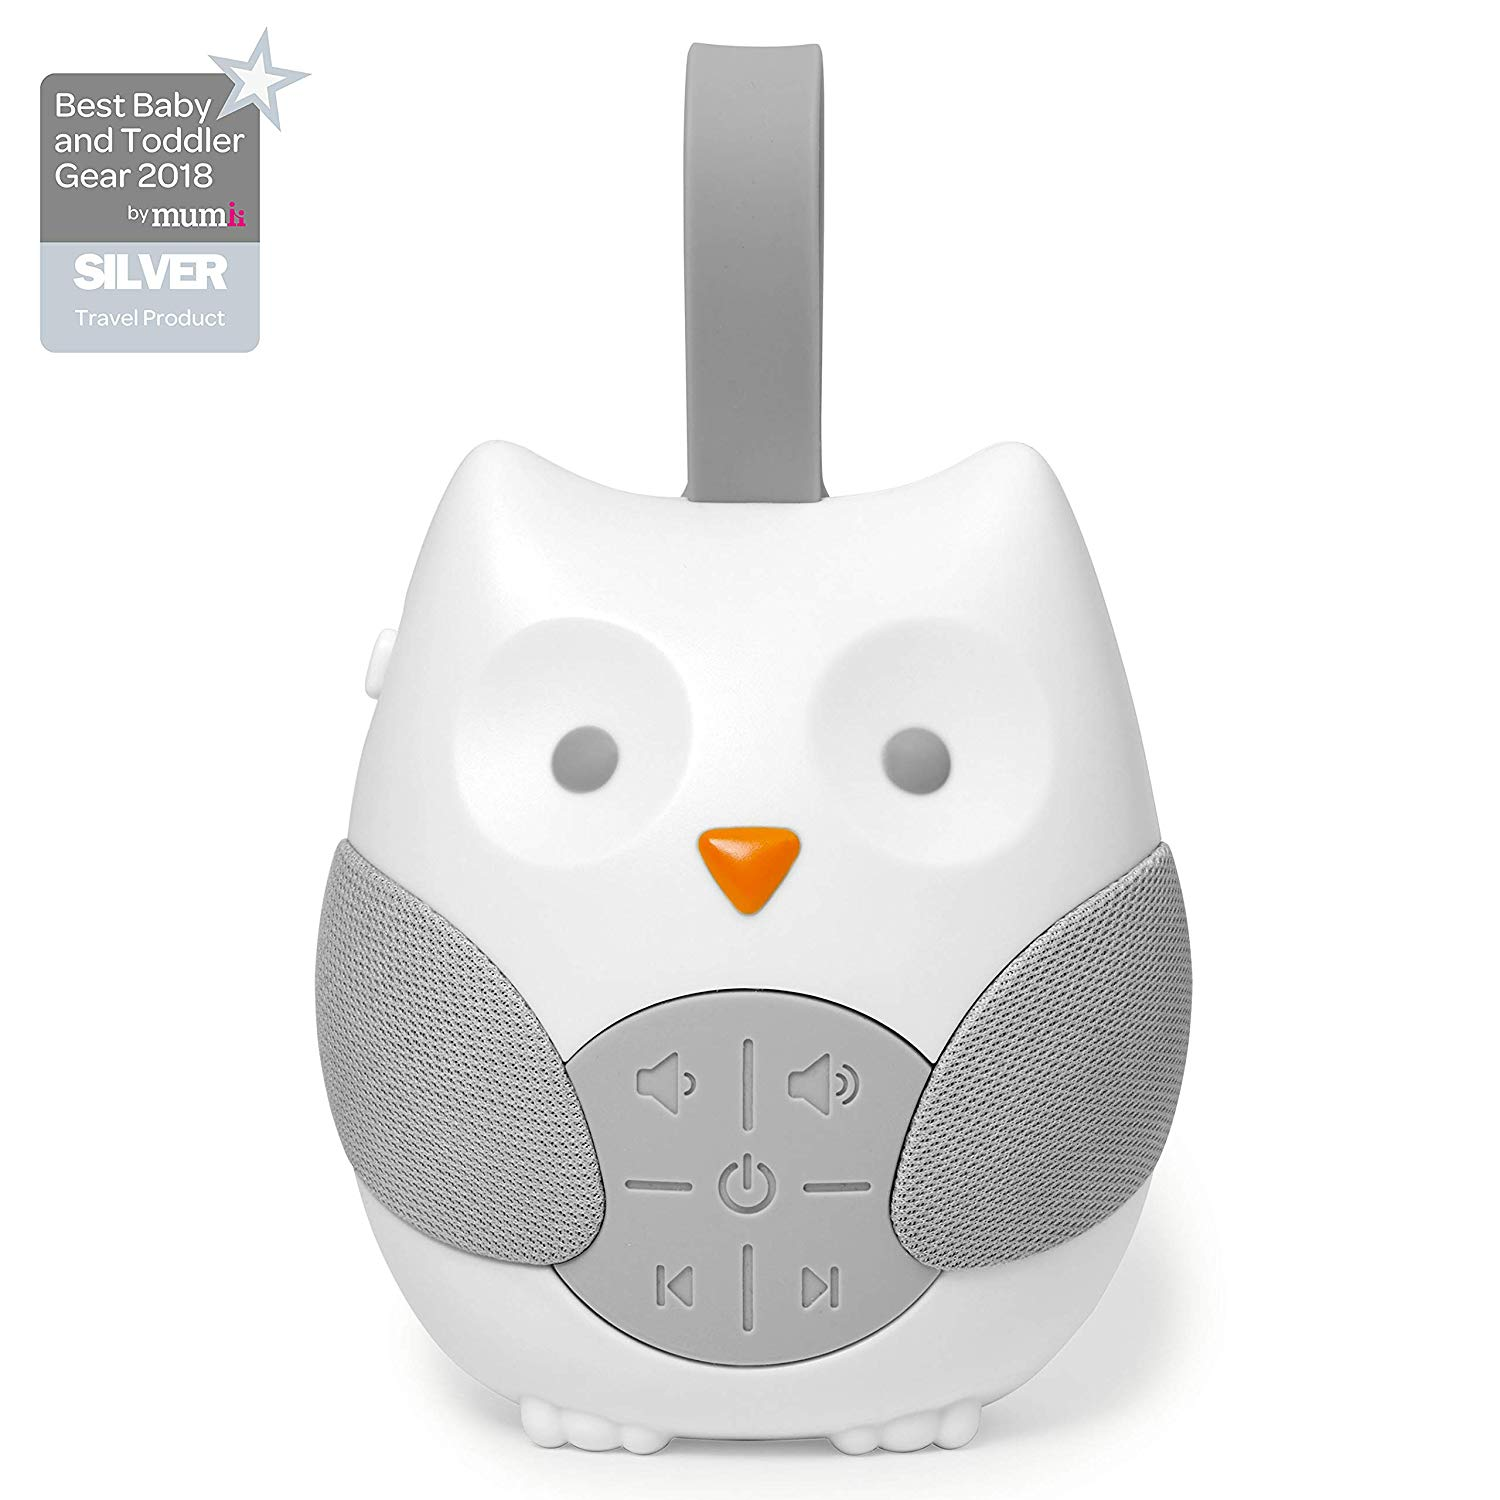 The travel version of Skip Hop soother, with a silicone strap for attachment